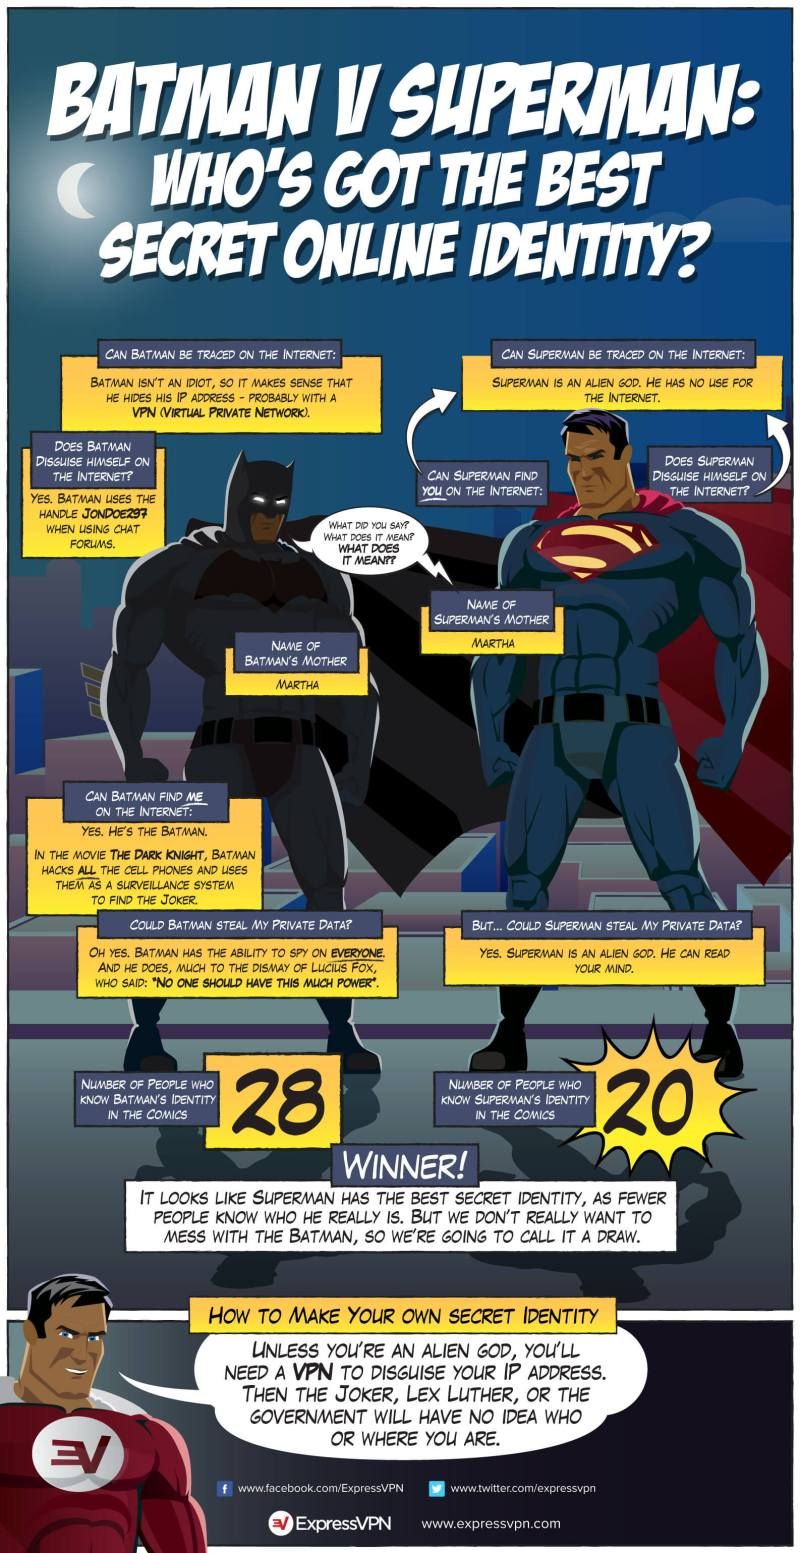 batman and superman are nothing compared to expressvpn for security